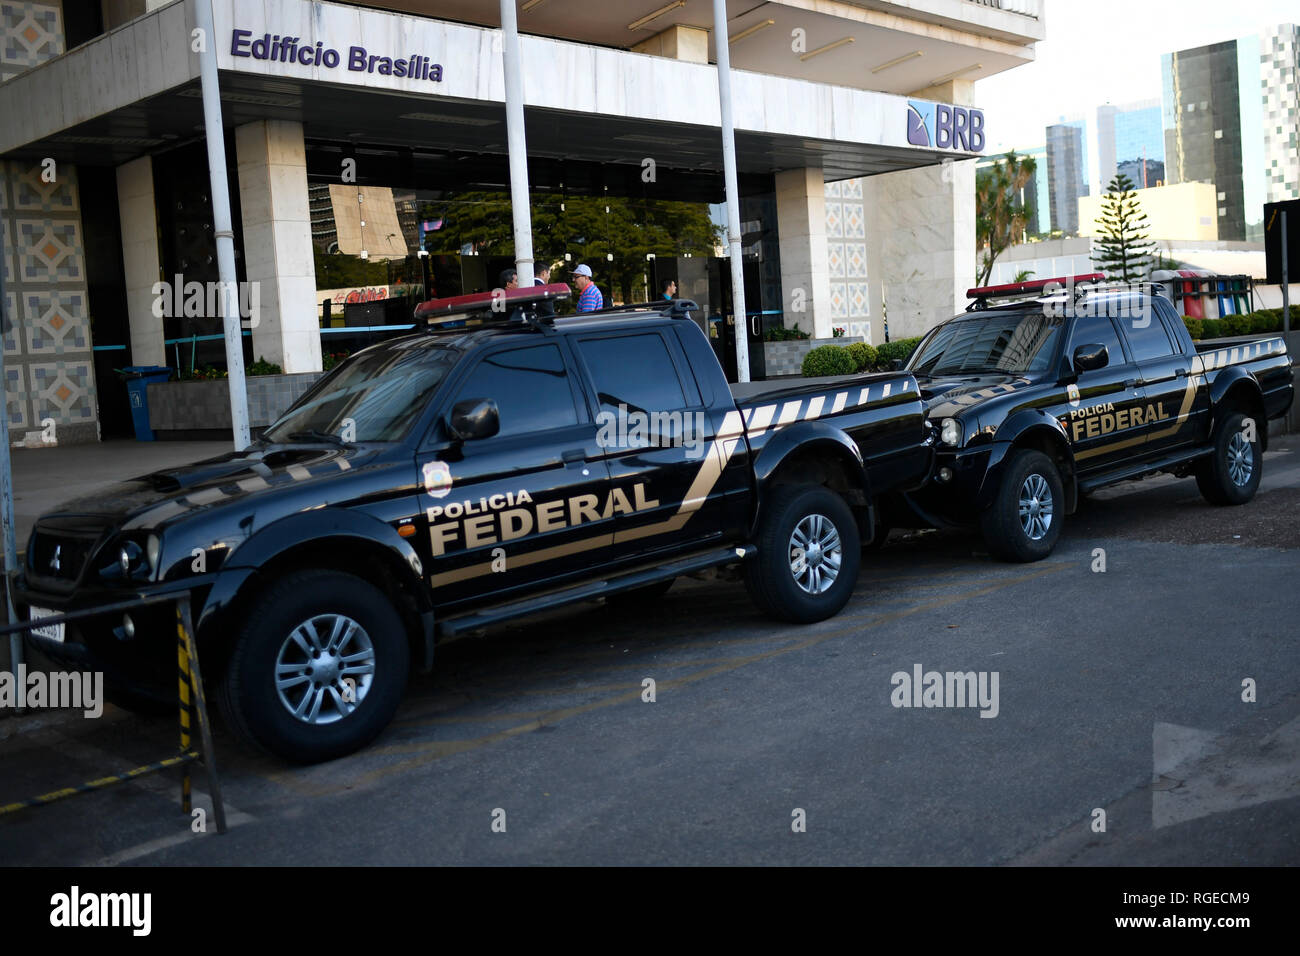 Brasilia, Brazil. 29th Jan, 2019. DF - Brasilia - 01/29/2019 - Operation PF BRB - The Federal Police holds this Tuesday, January 29, the search and seizure at the BRB headquarters, Banco de Brasilia, to investigate a suspected payment scheme for tuition fees of R $ 16, 5 million to BRB directors and former directors, Banco de Brasilia, in exchange for investments in projects such as the late Trump Hotel in Rio de Janeiro, now known as LSH Lifestyle. Photo: Mateus Bonomi/AGIF Credit: AGIF/Alamy Live News - Stock Image